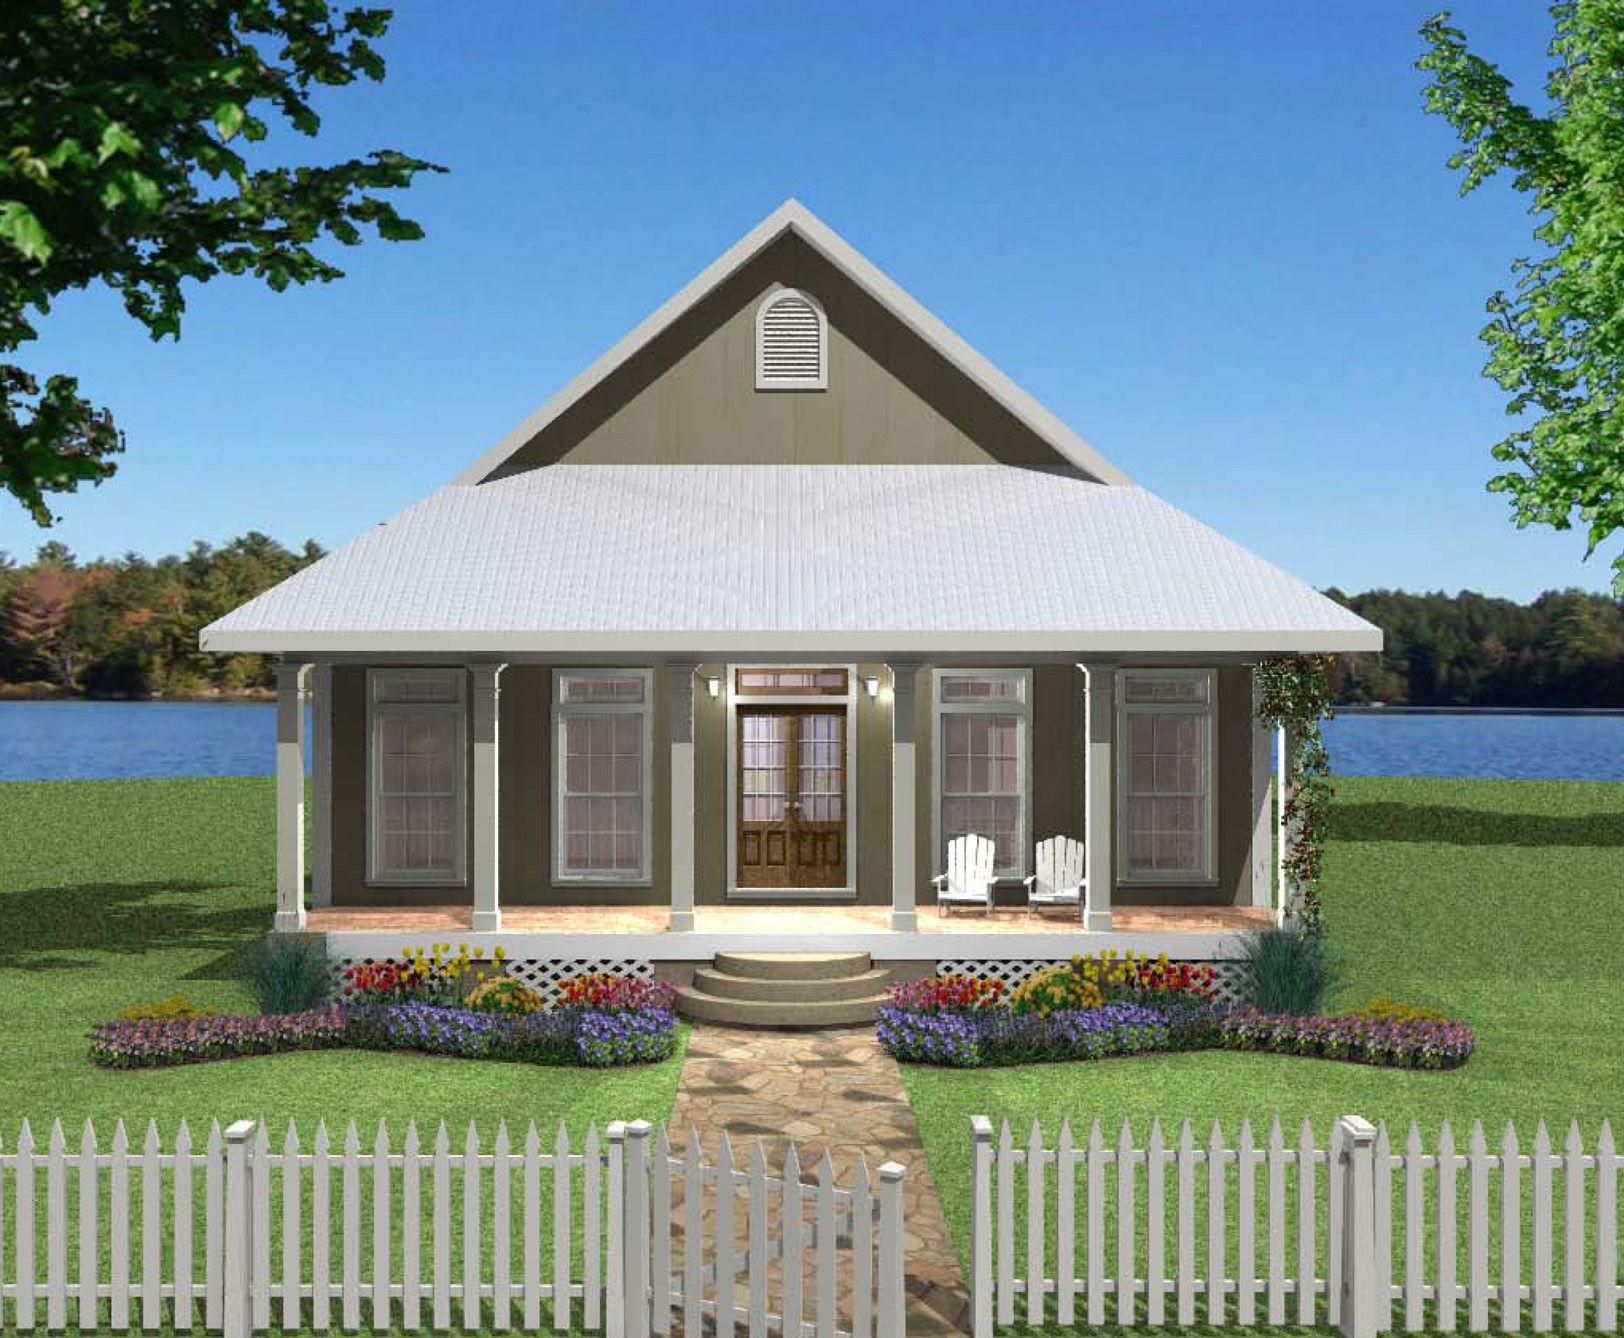 Small Plan Big Heart in 2019 Cottage style house plans